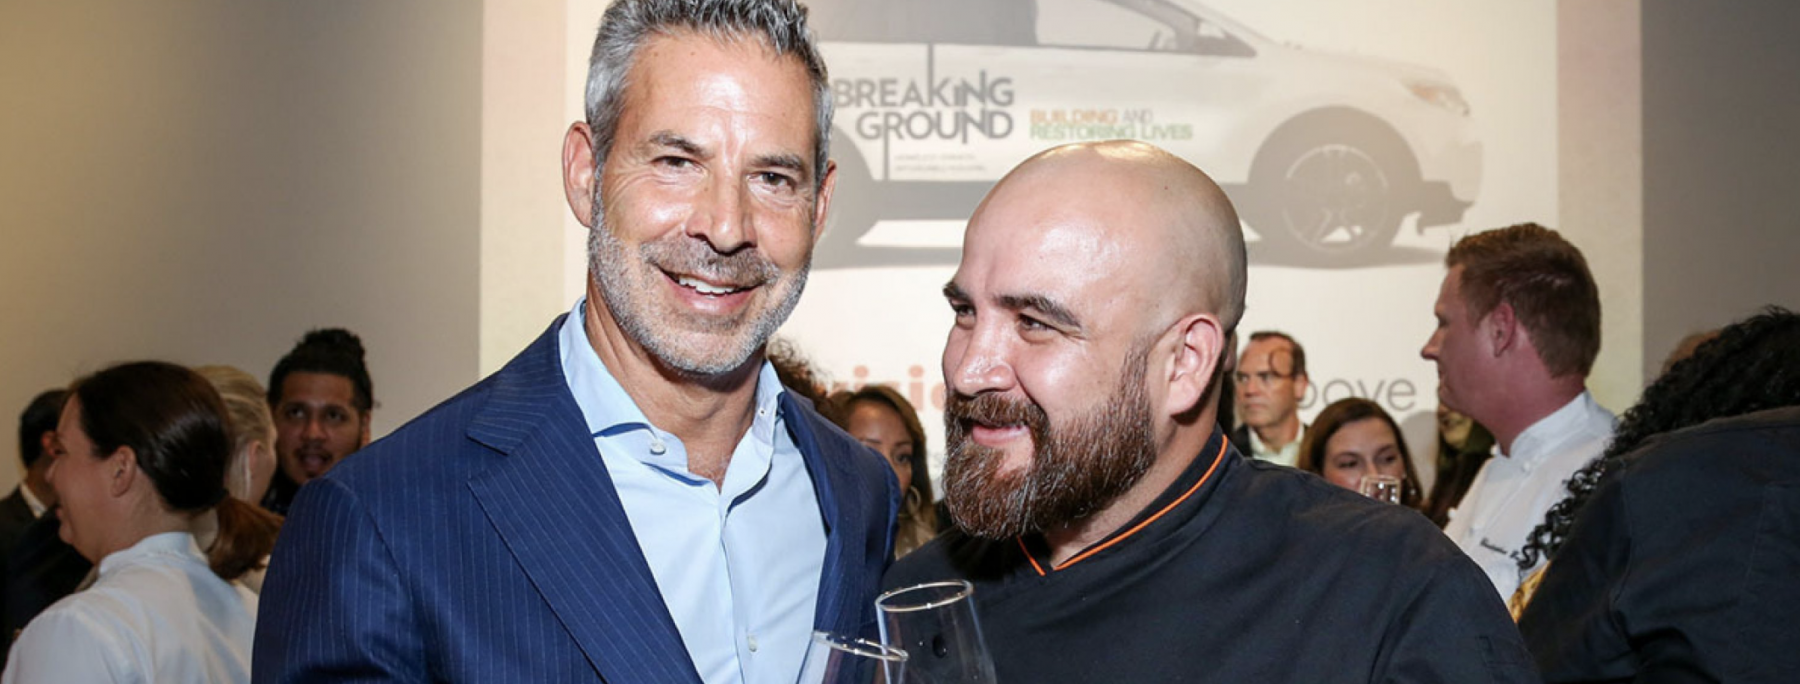 Serving Up Home, Breaking Ground's Spring Cocktail Benefit